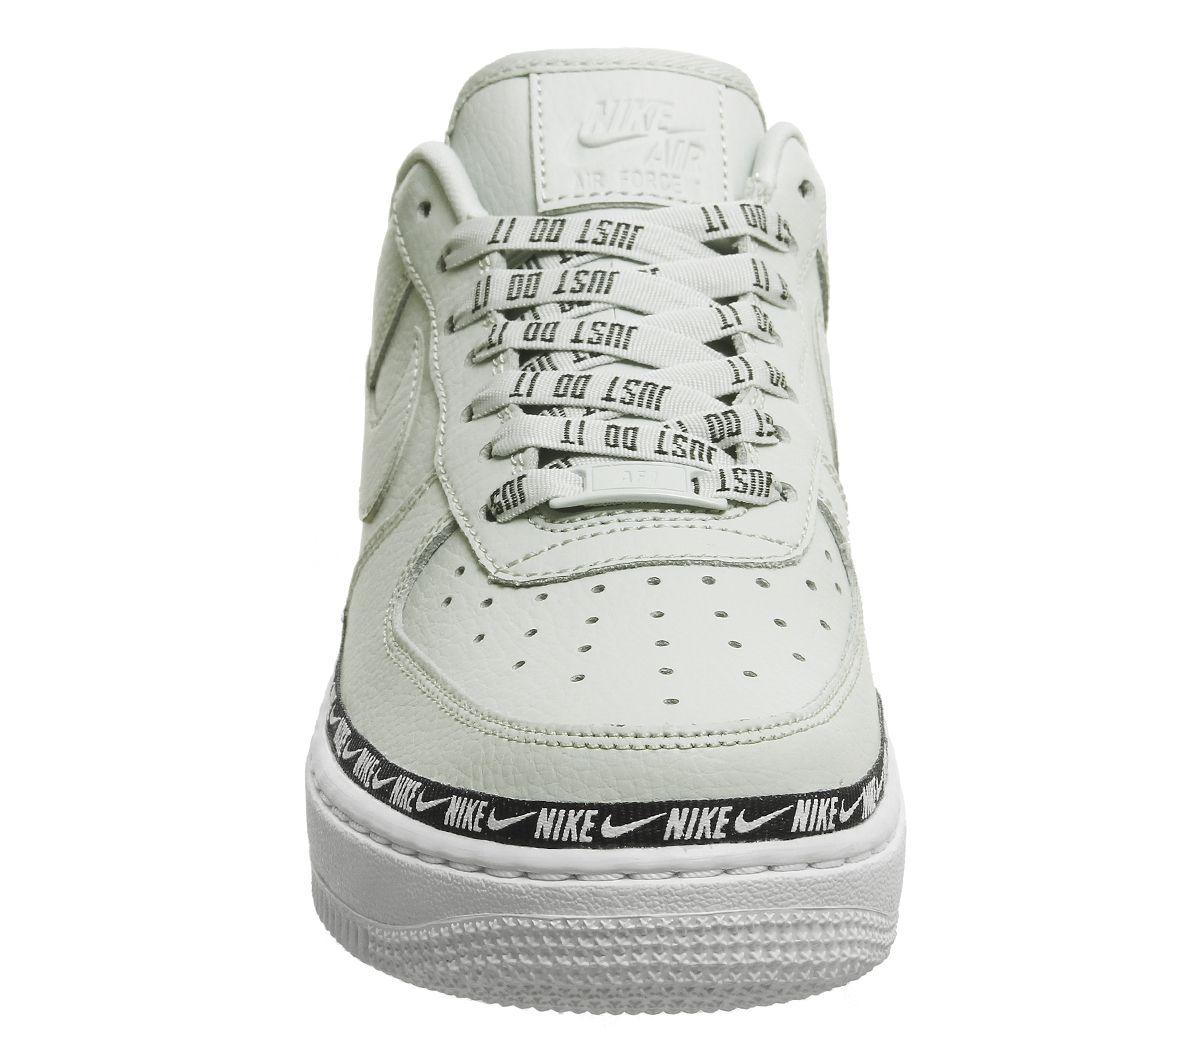 Nike Air Force 1 White Light High Top Trainers